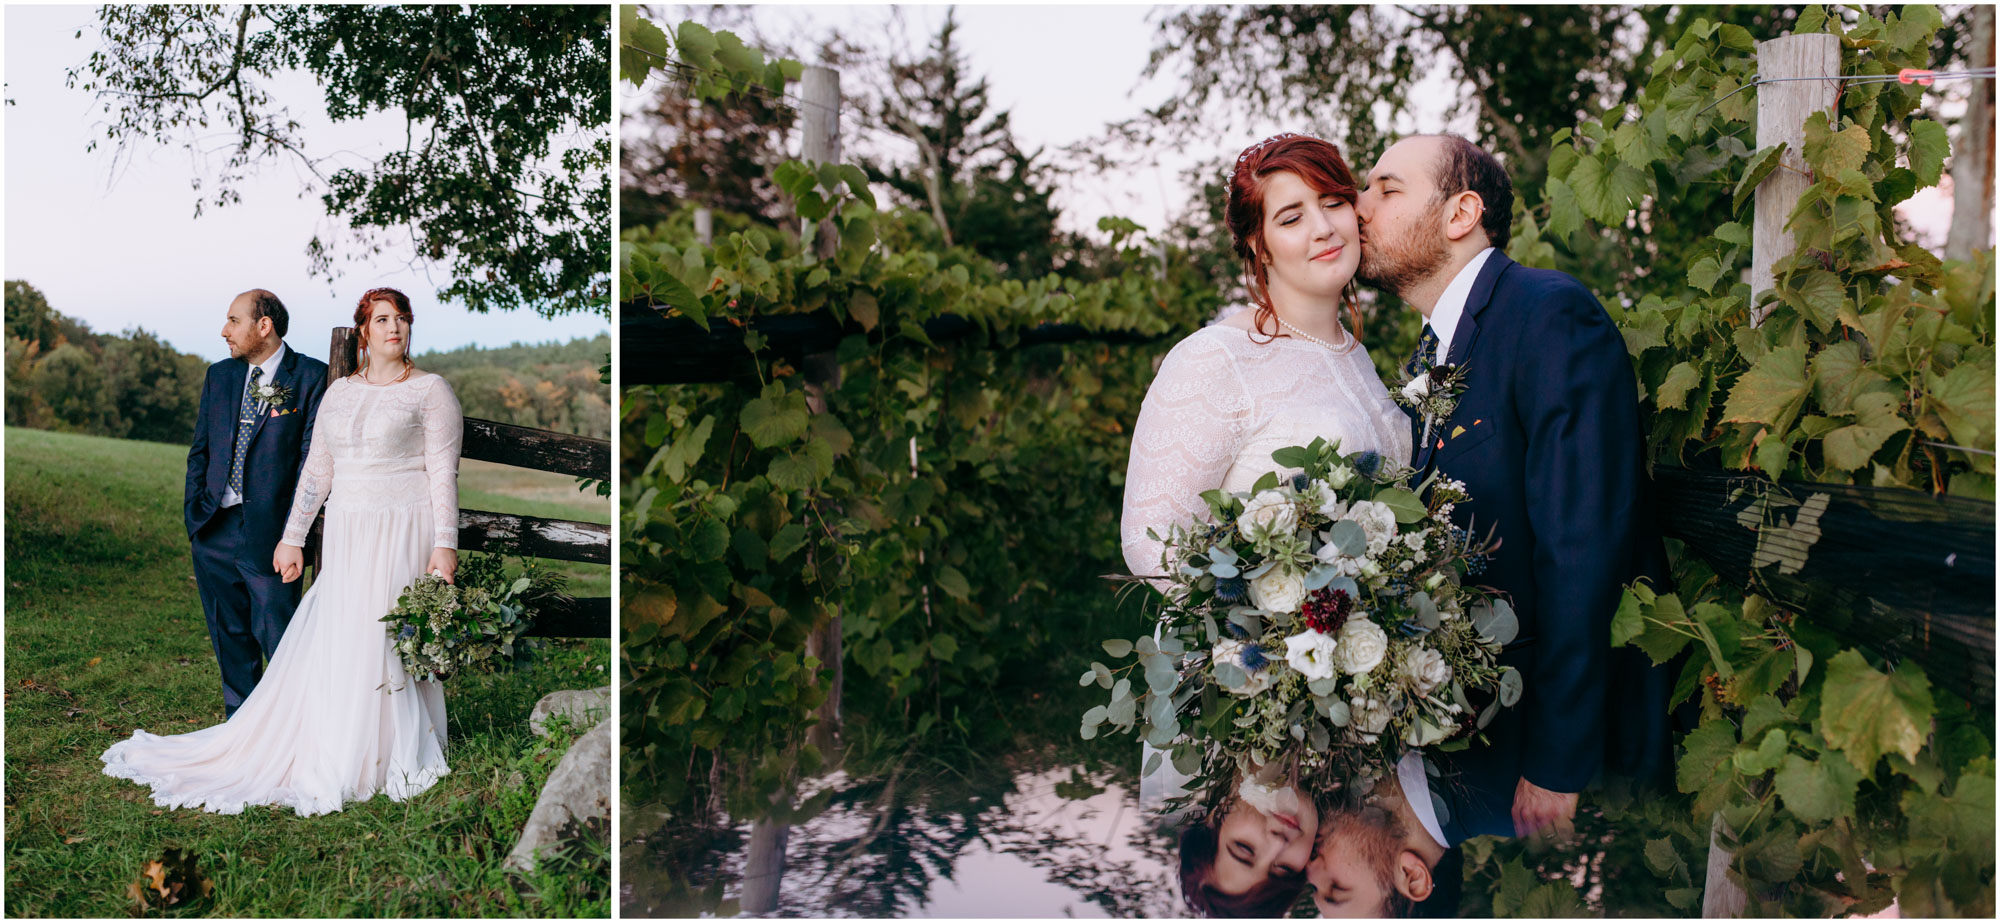 Dramatic pose and reflection of bride and groom in vineyard - by Ashleigh Laureen Photography at LaBelle Winery in Amherst, New Hampshire